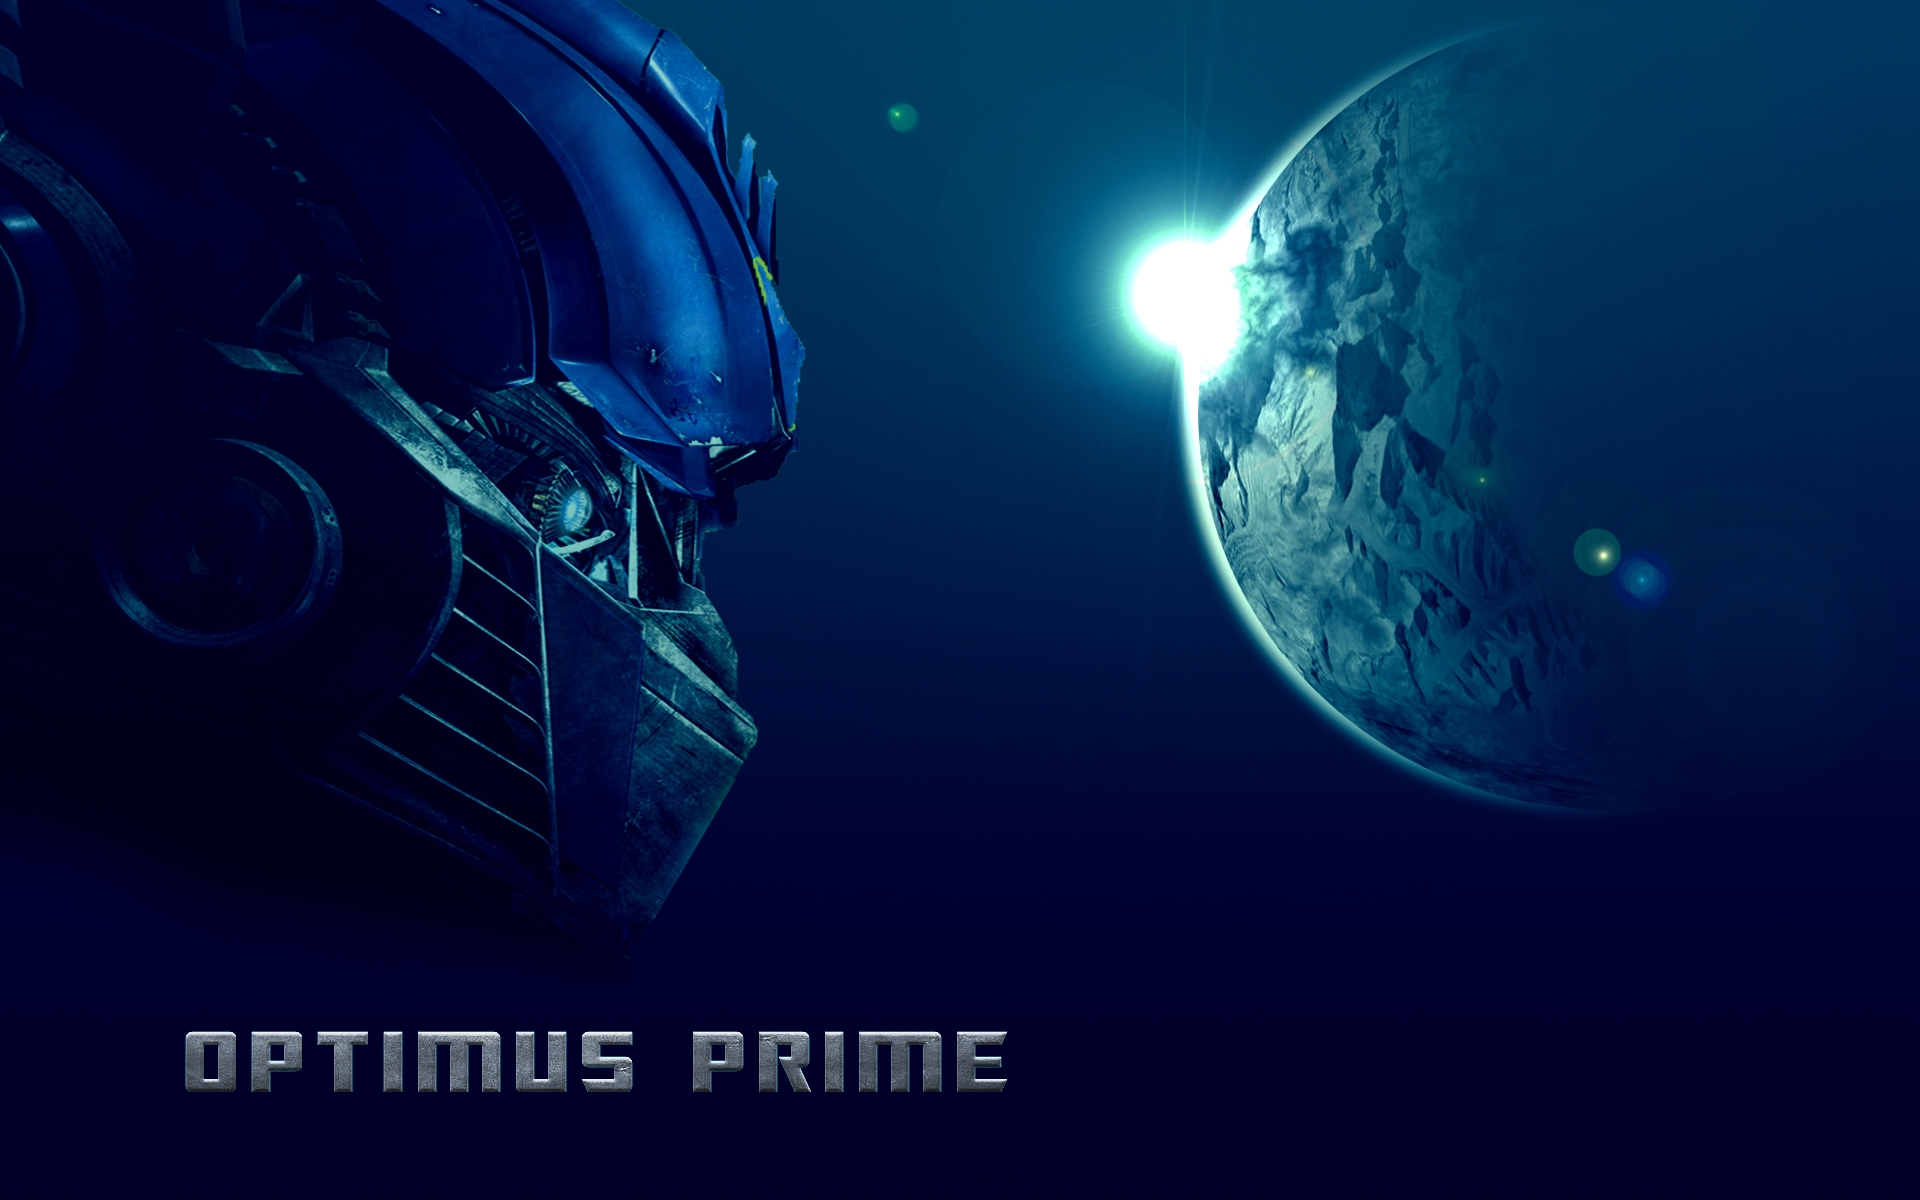 optimus prime seibertron galaxy art